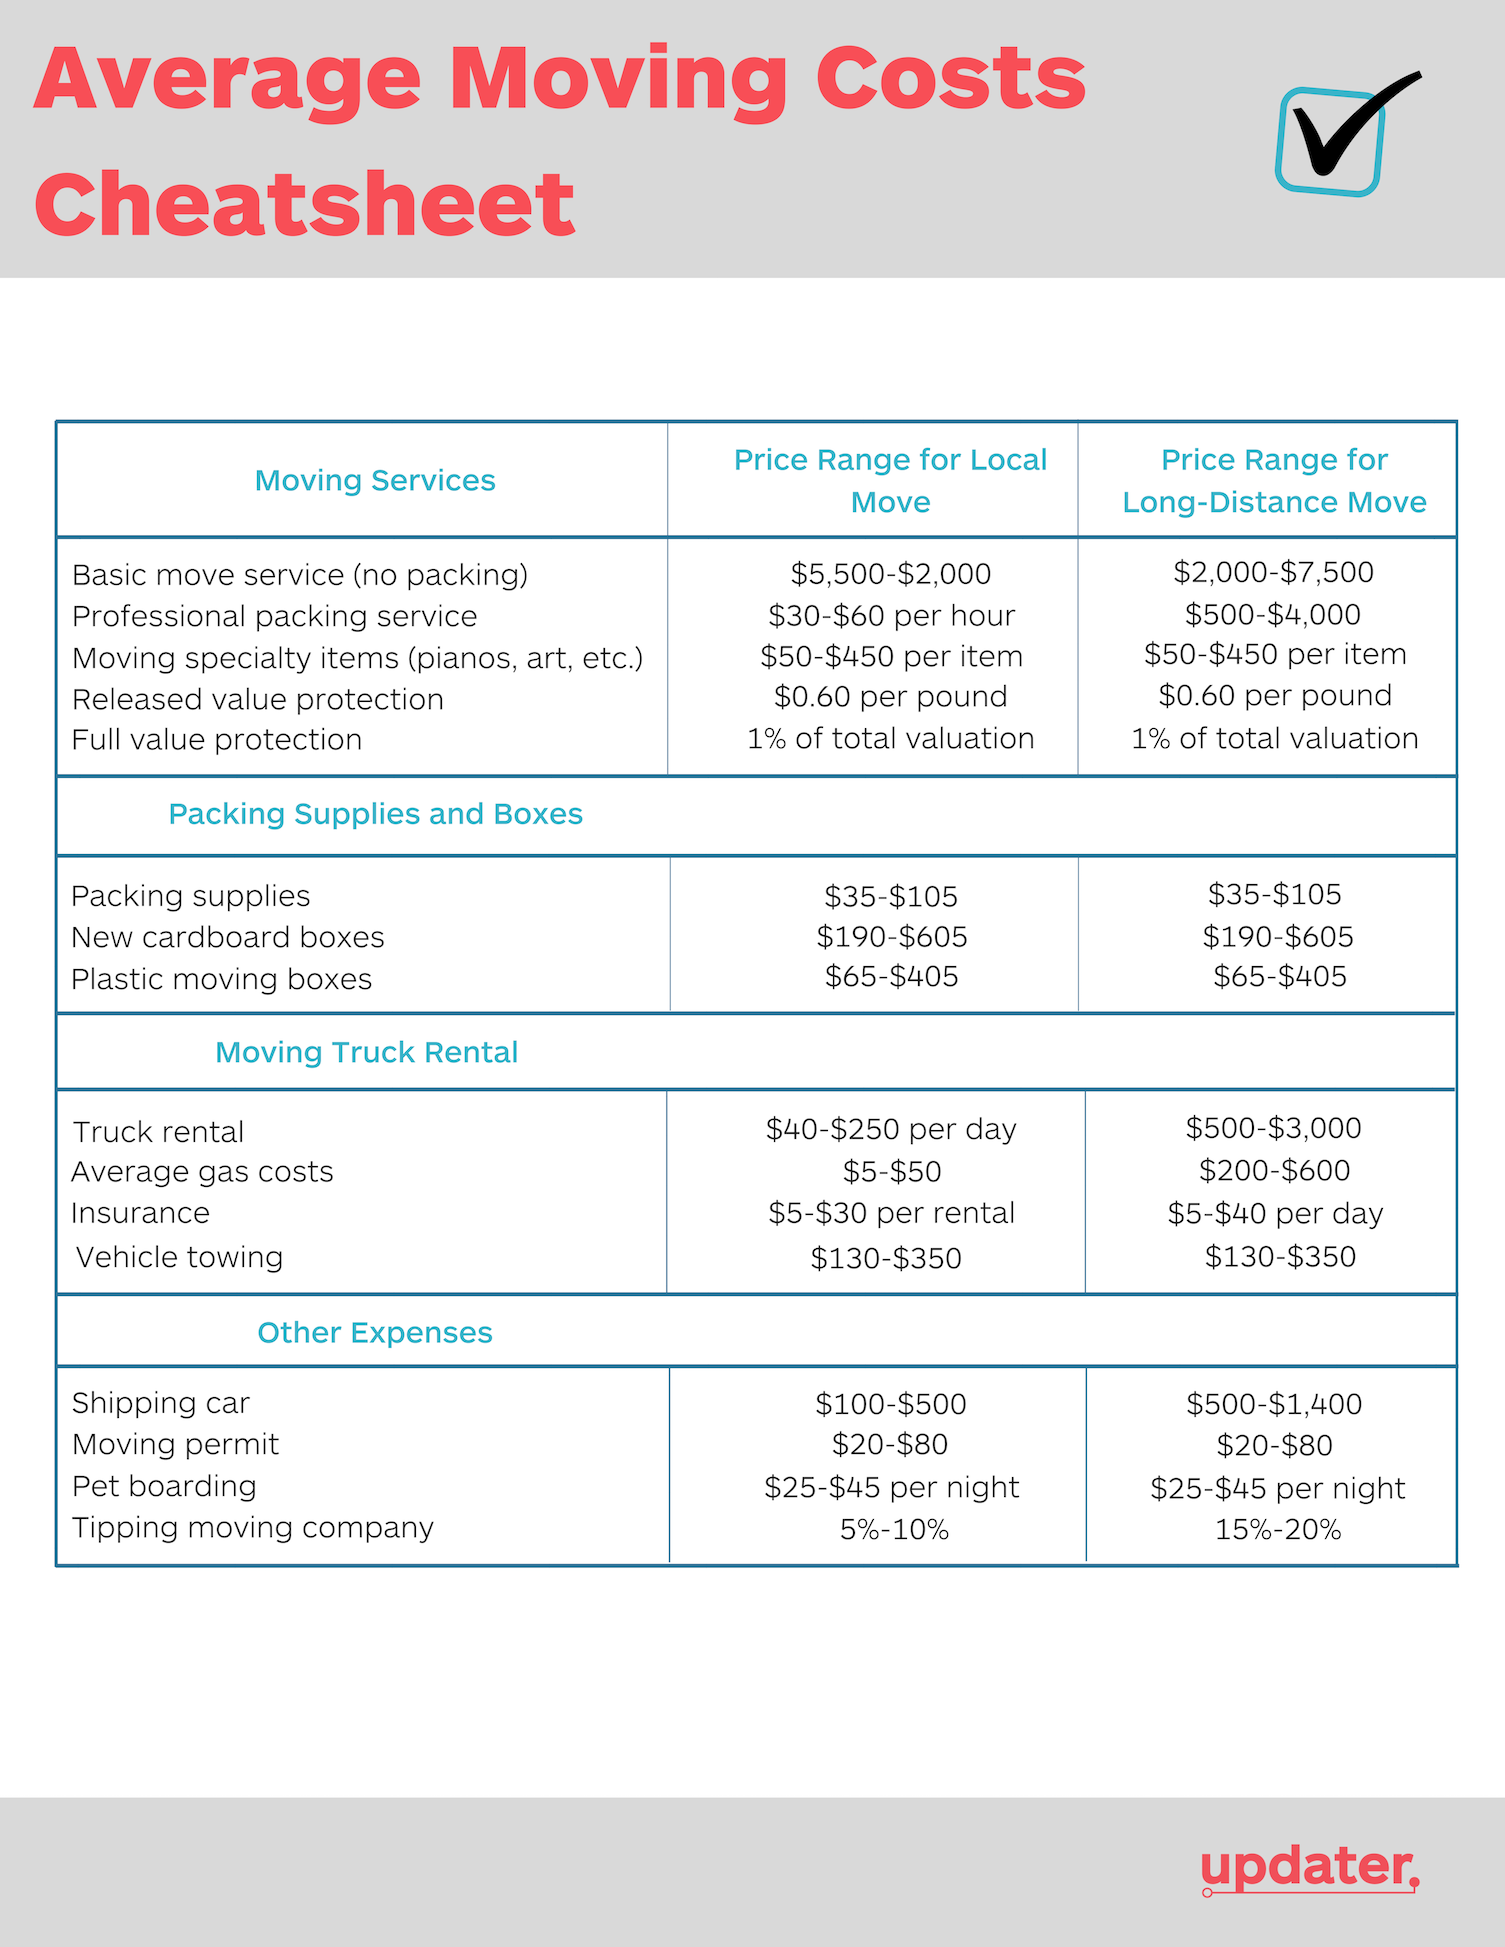 Updater Average Moving Costs Cheatsheet.png